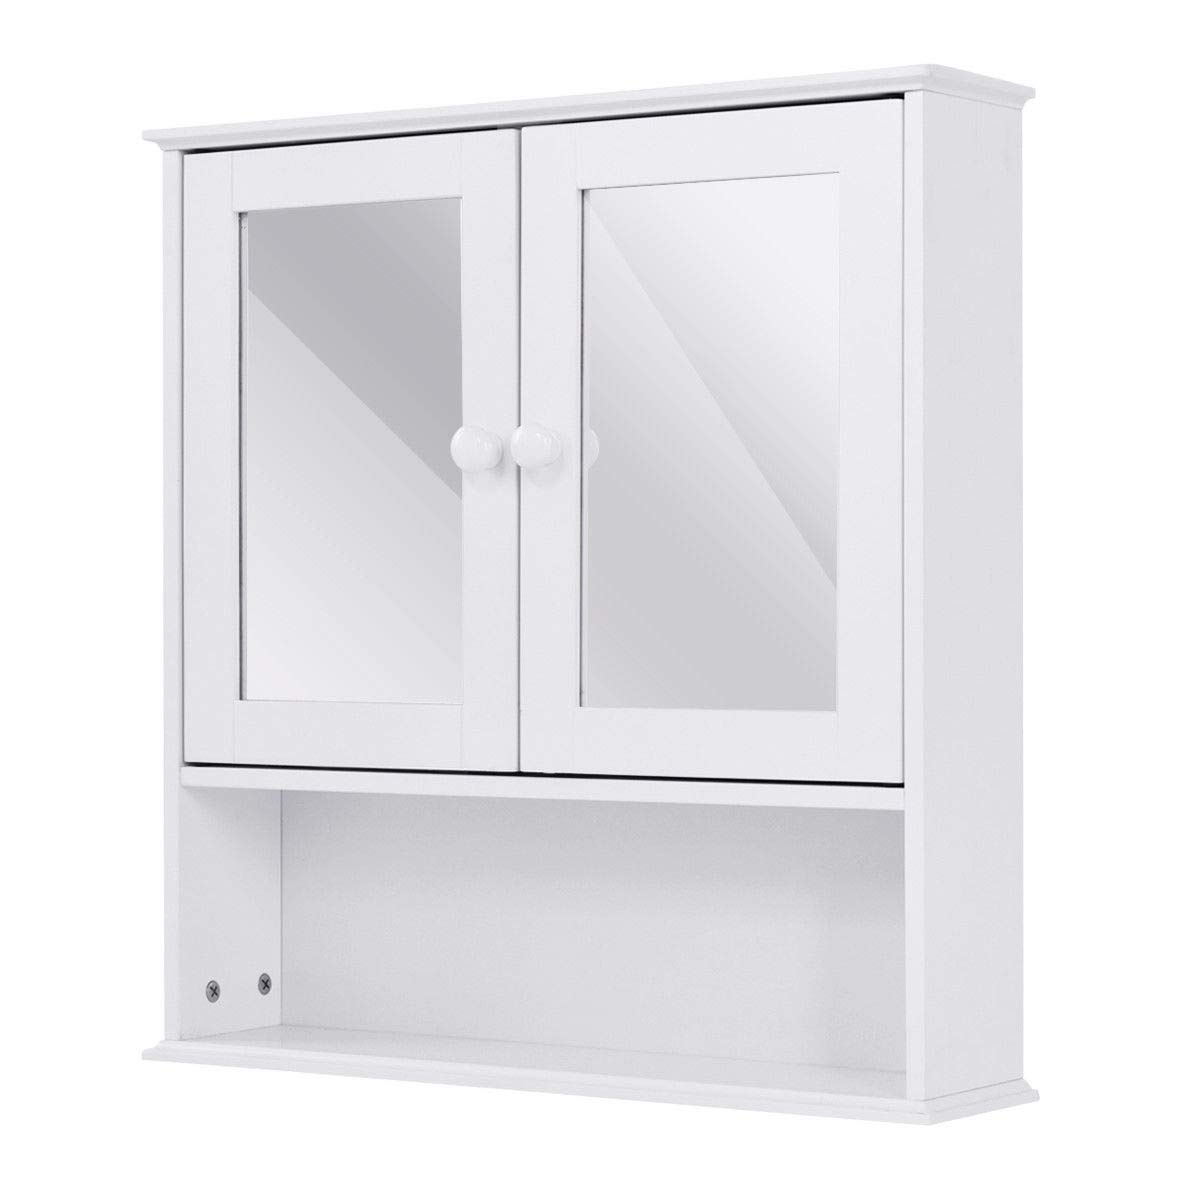 Tangkula Bathroom Cabinet Home Kitchen Living Room Double